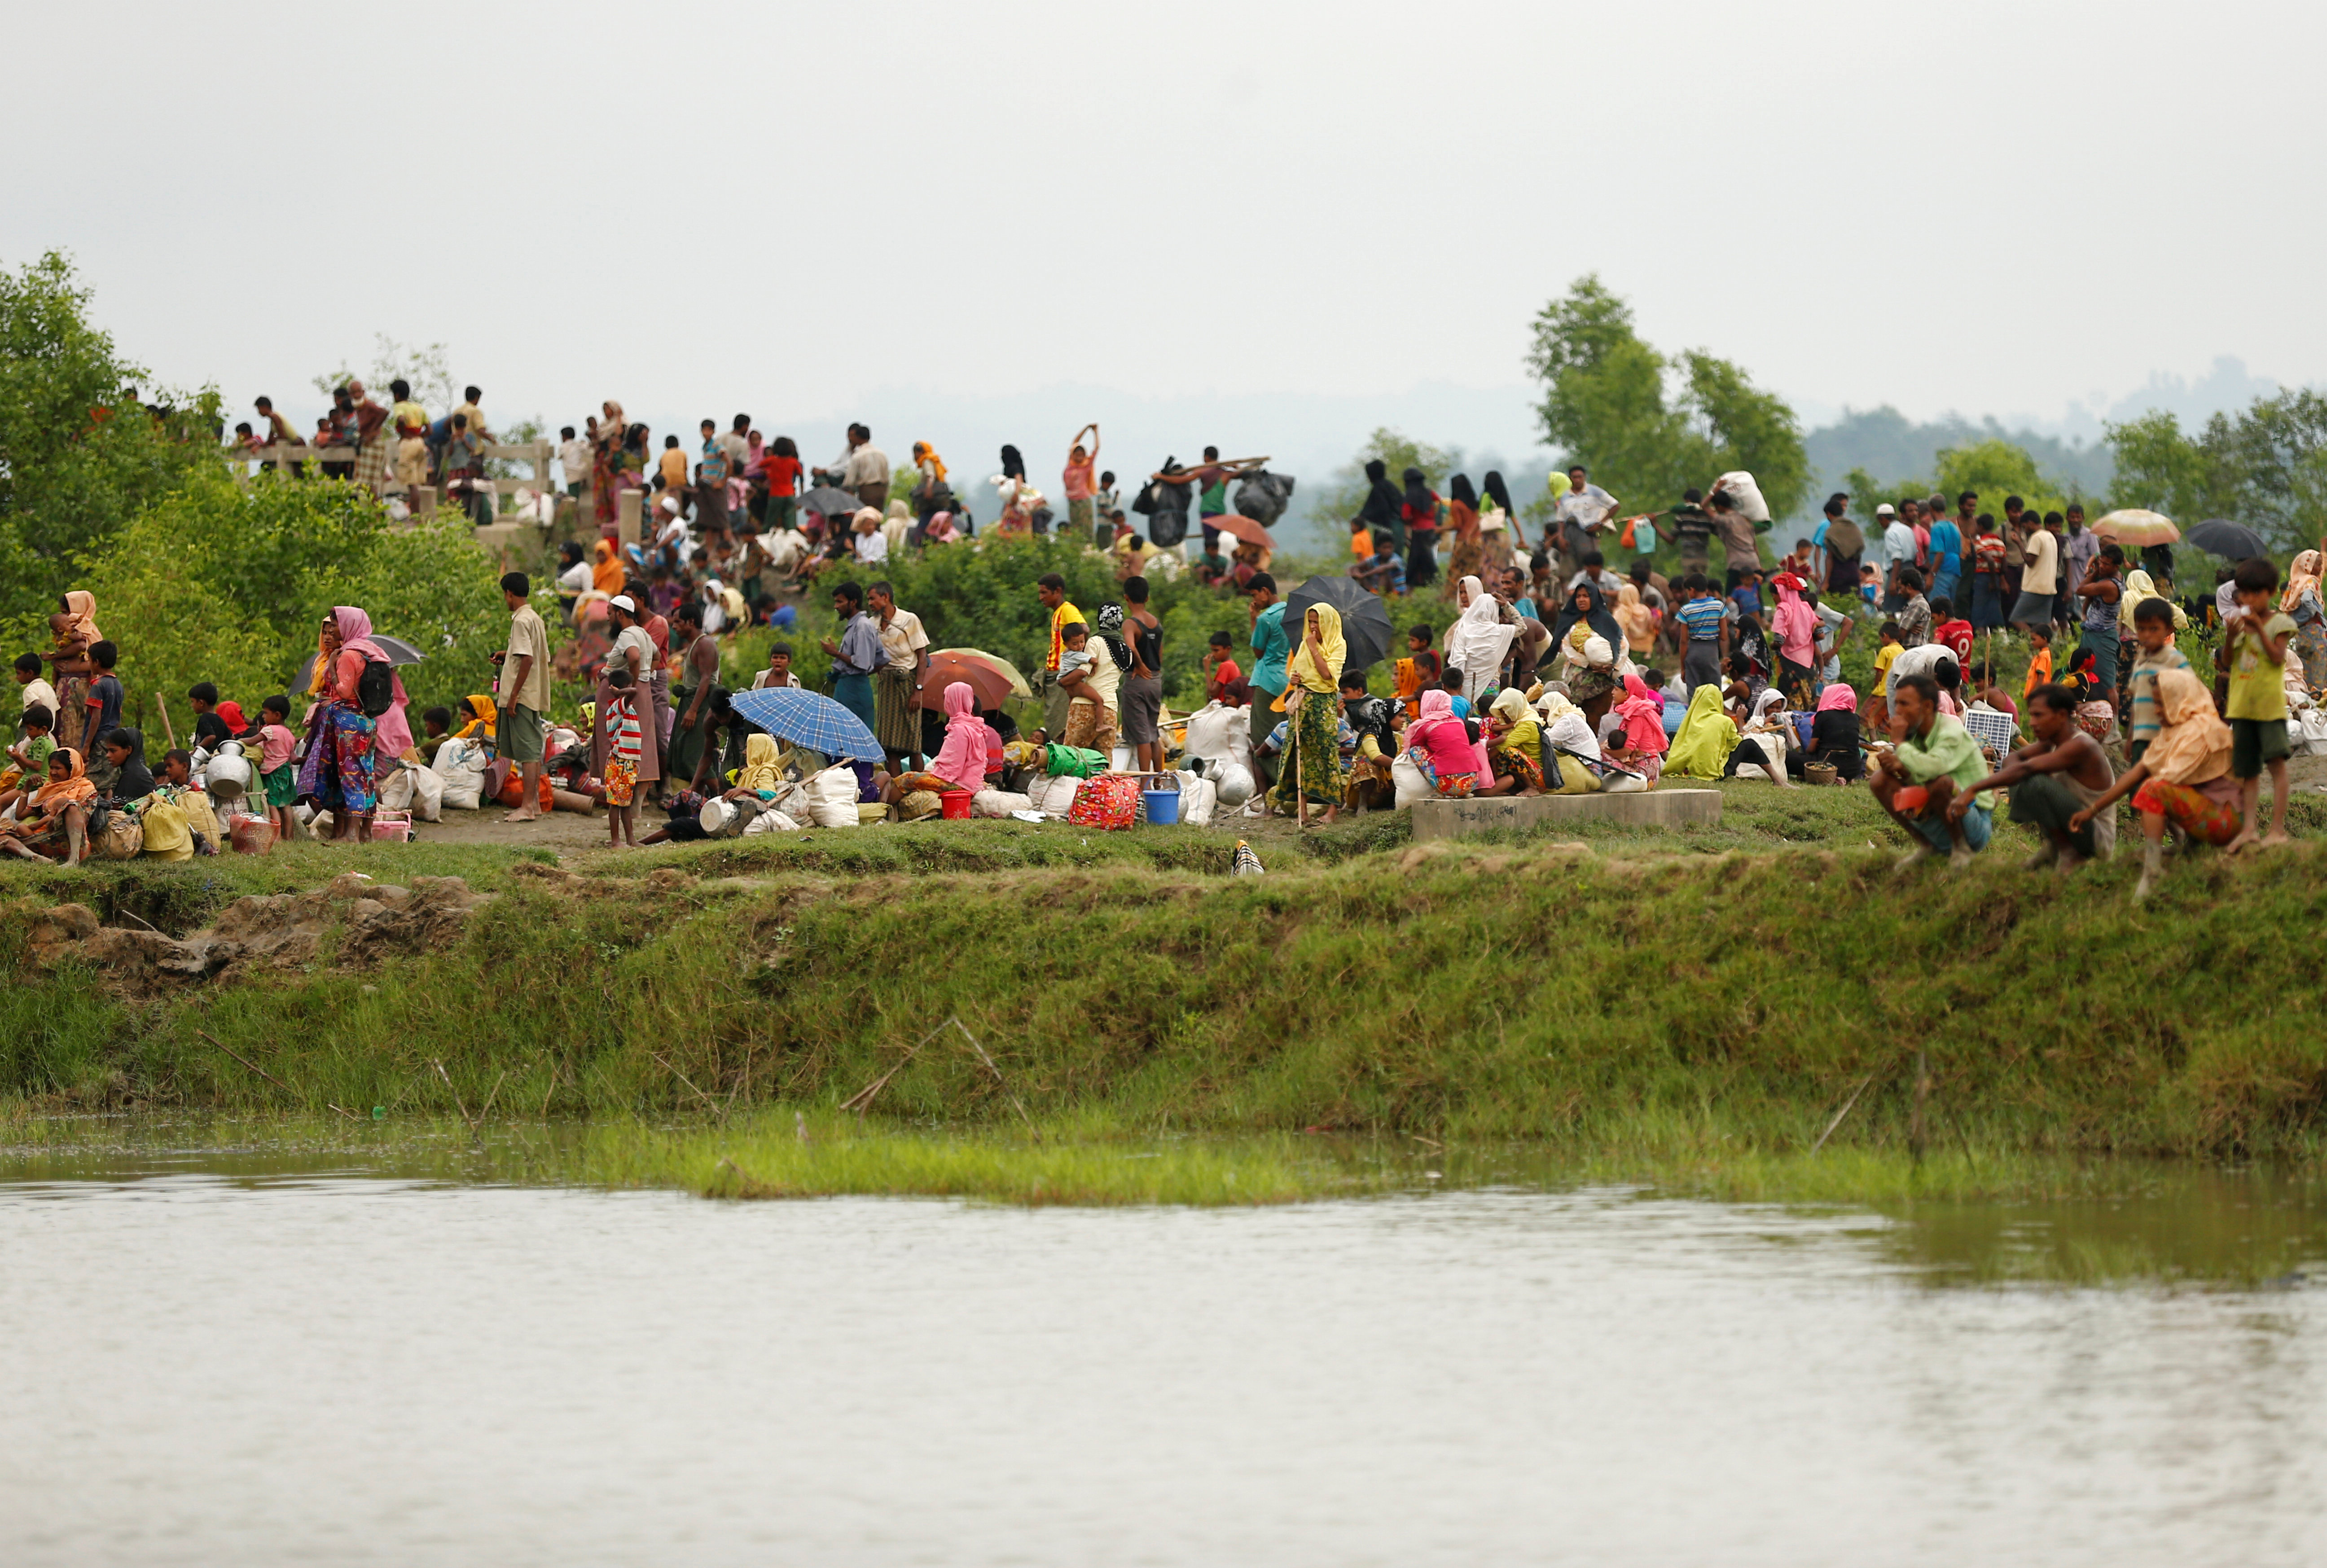 Rohigya refugees are seen waiting for boat to cross the border through the Naf river in Maungdaw, Myanmar, September 7, 2017. REUTERS/Mohammad Ponir Hossain